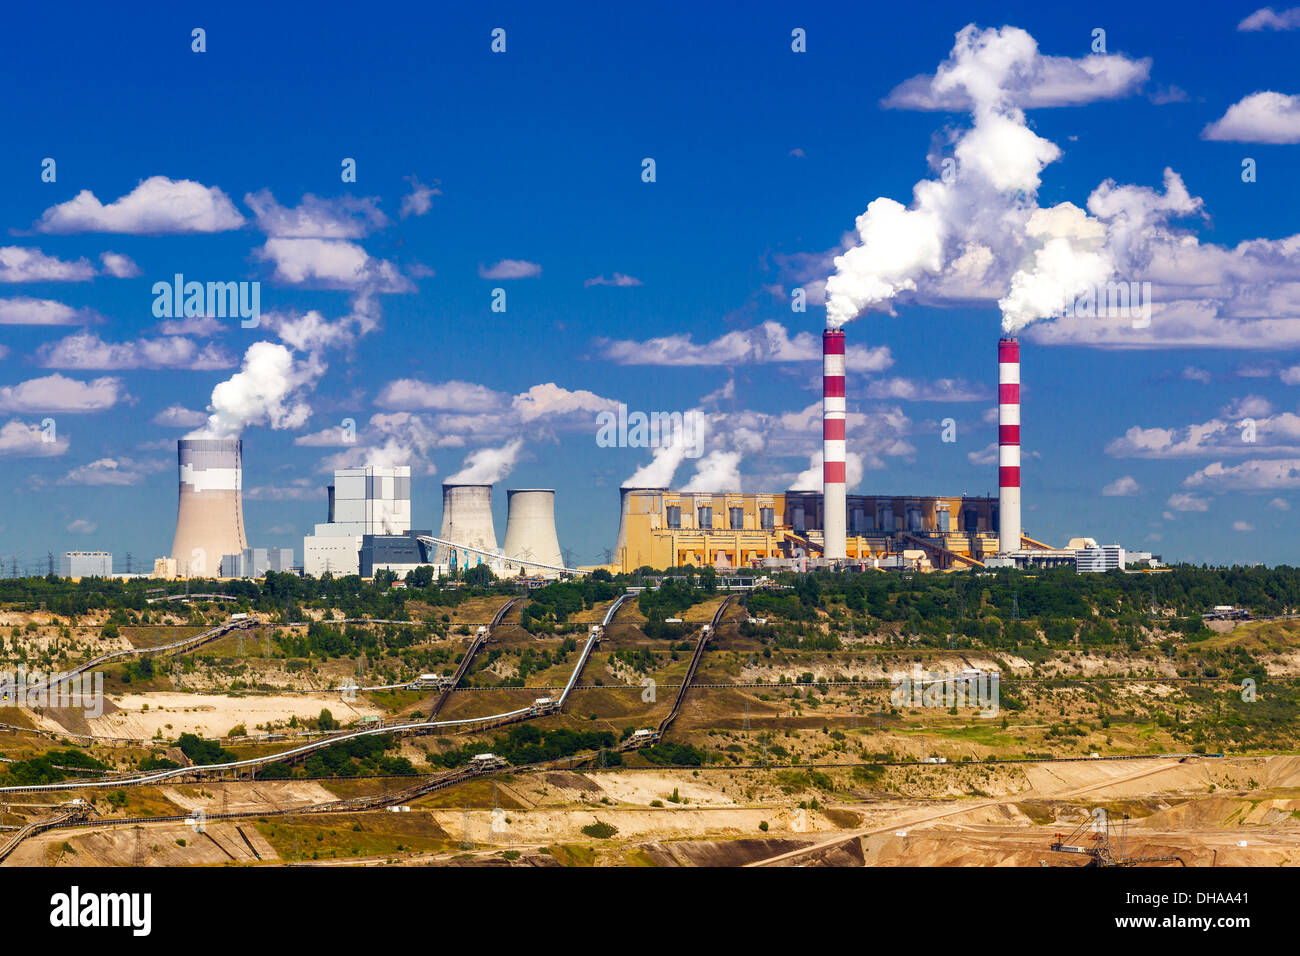 Surface coal mining and power station in Belchatow, Poland - Stock Image